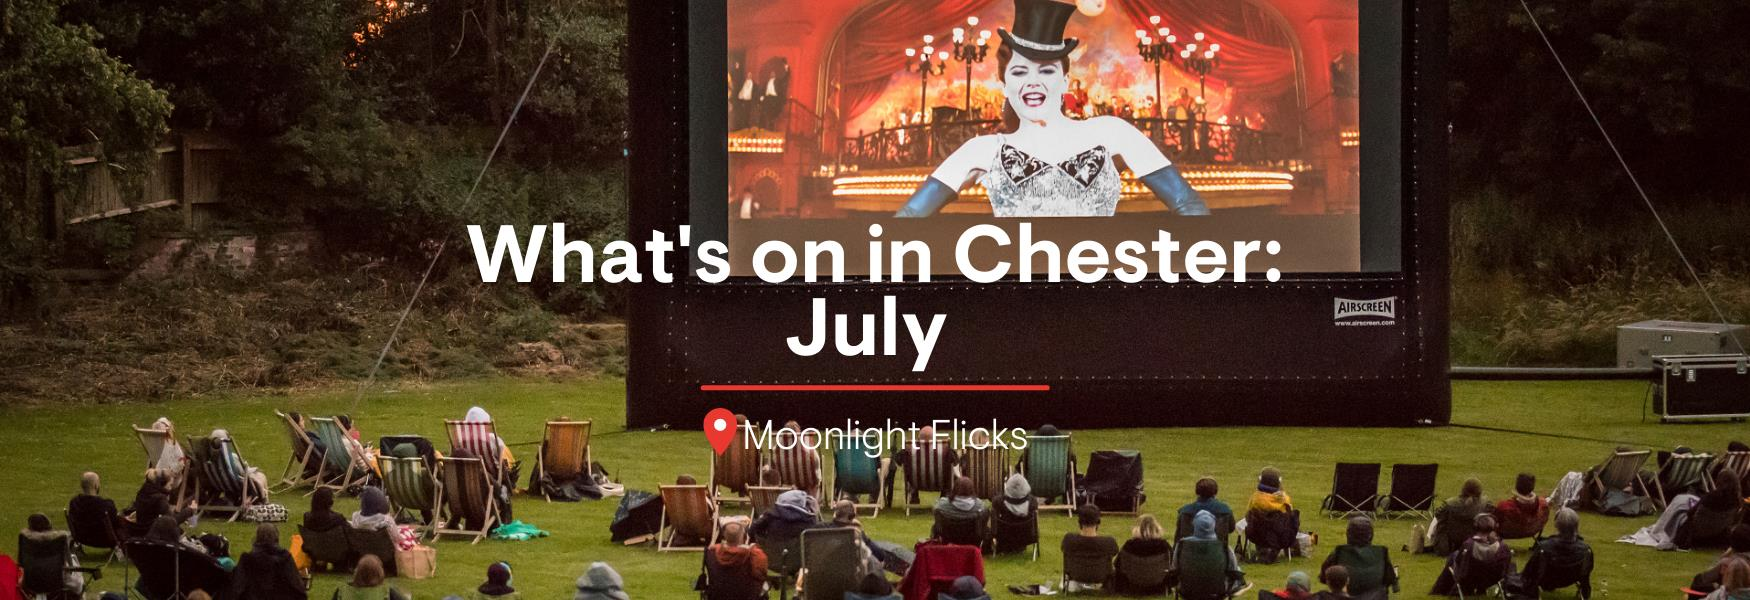 What's on in Chester: July